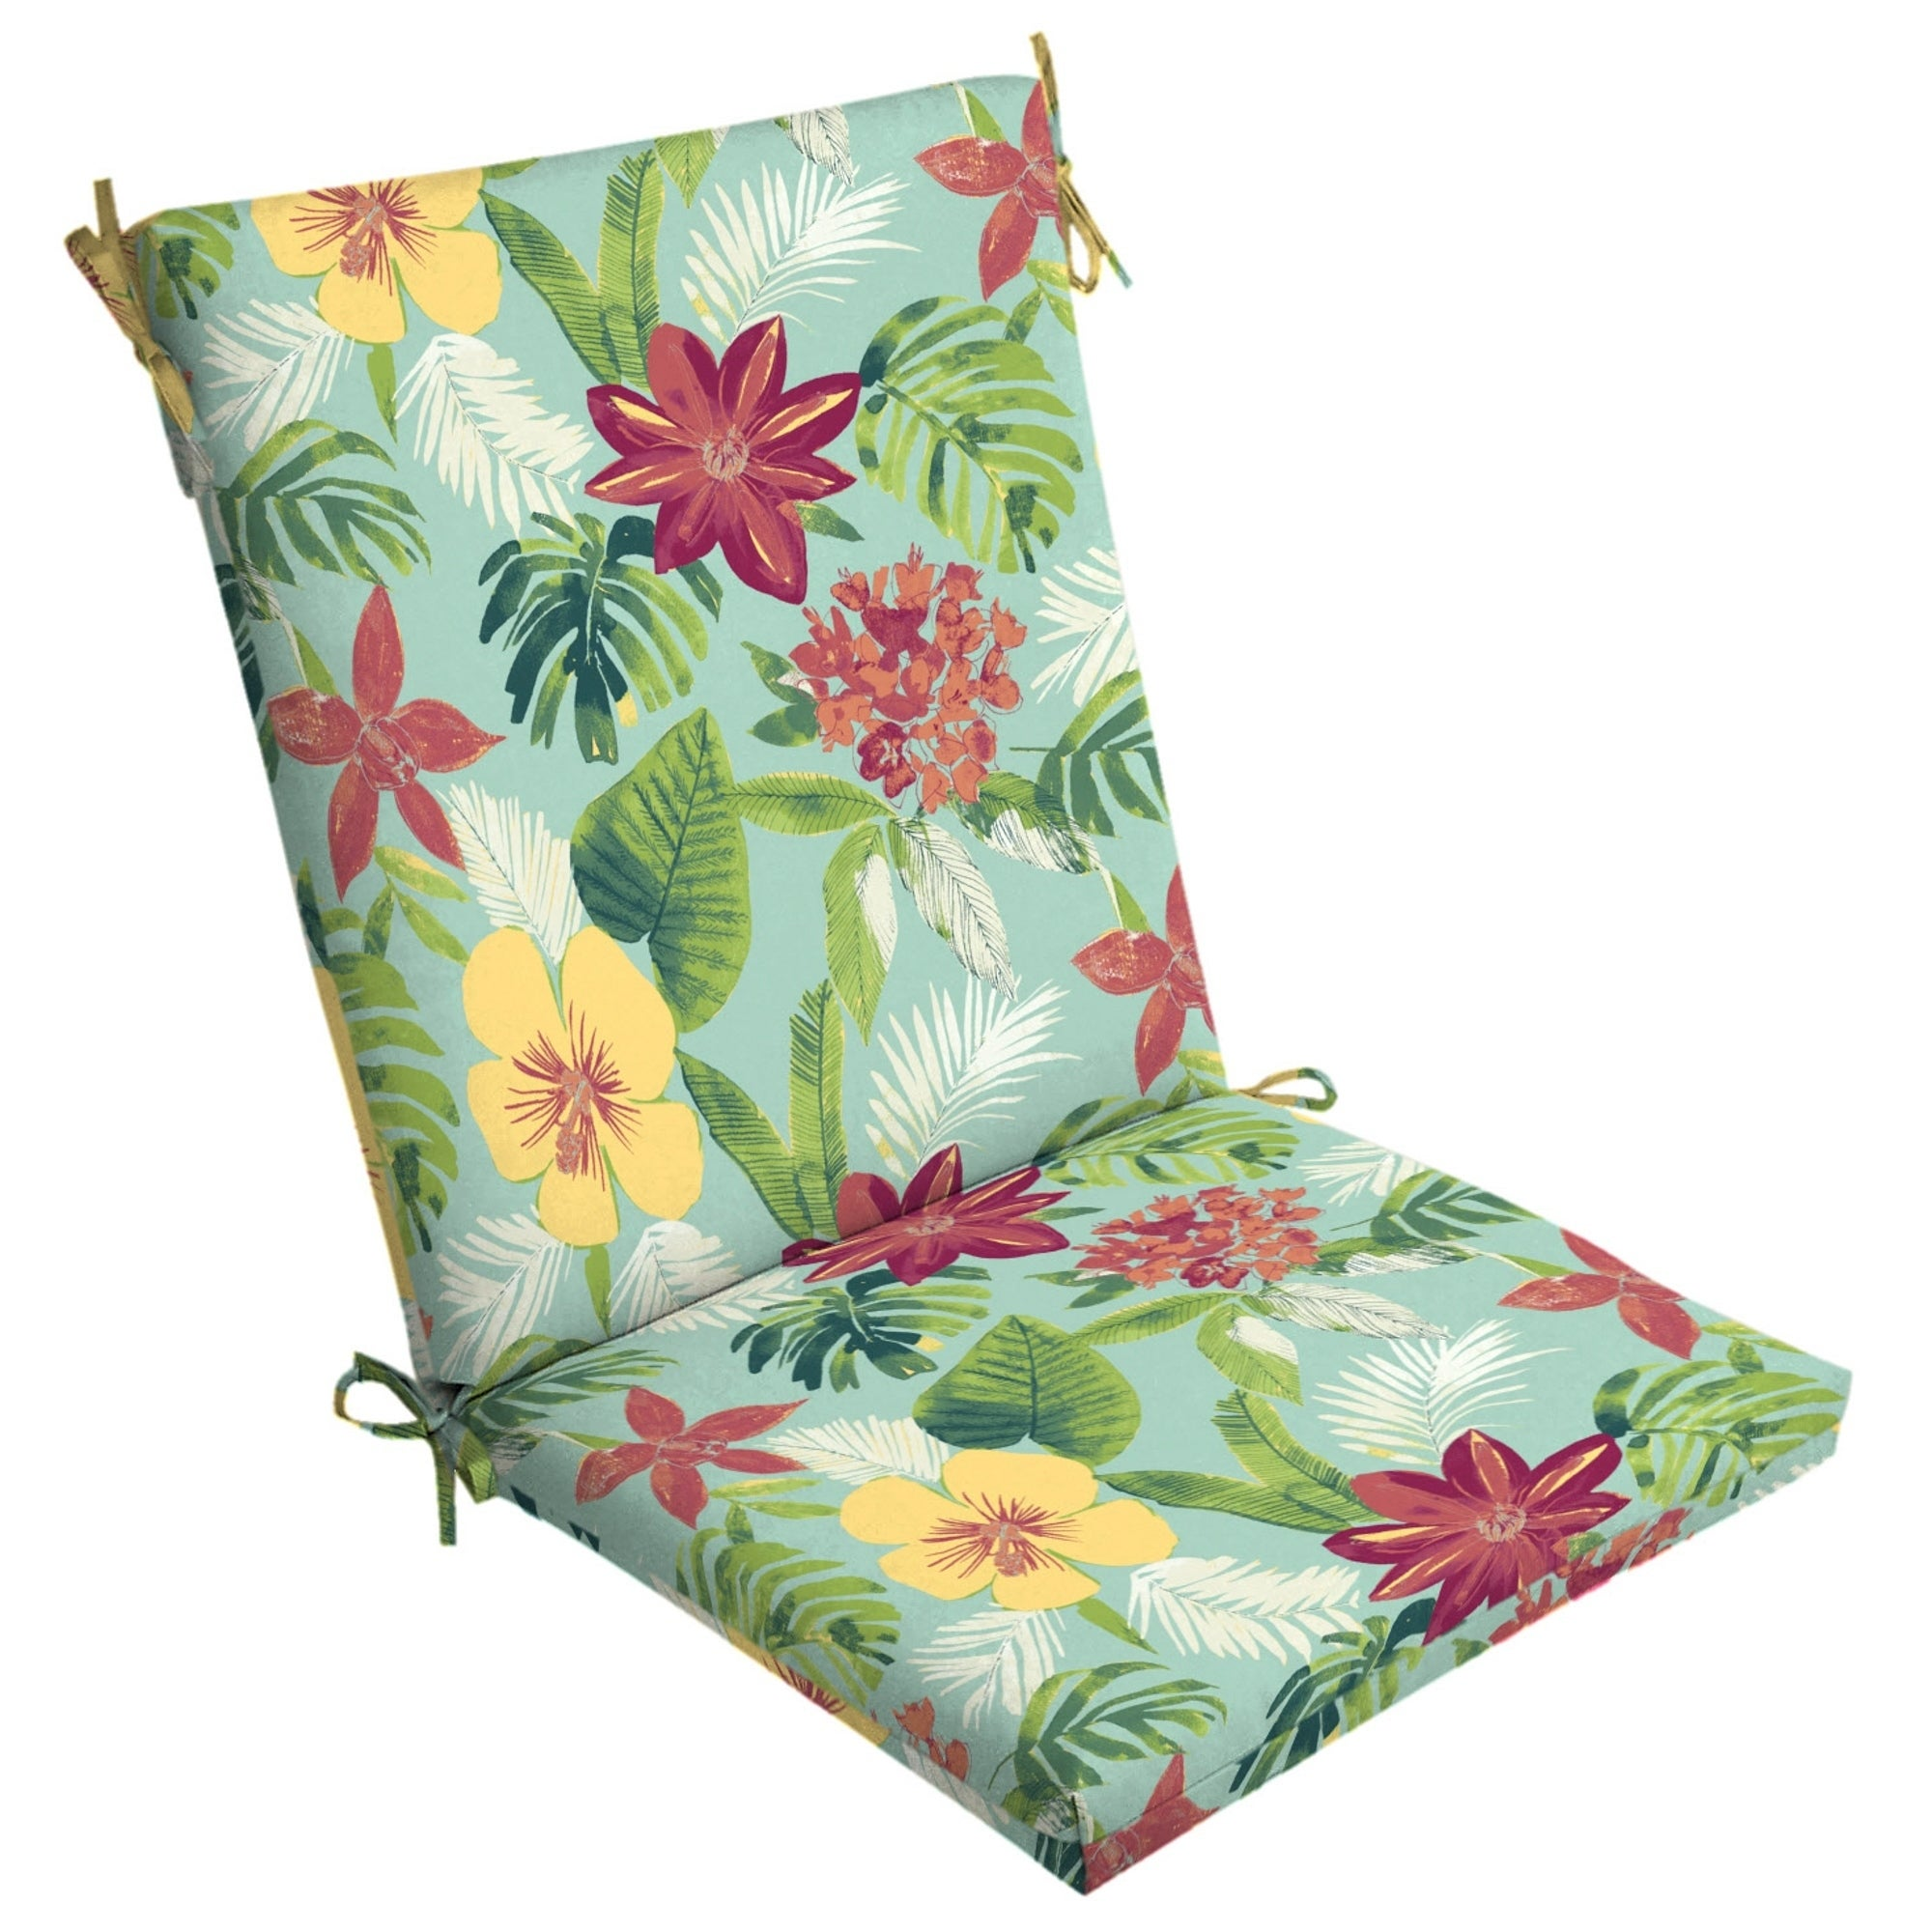 Arden Selections Elea Tropical Outdoor Clean Finish Chair Cushion